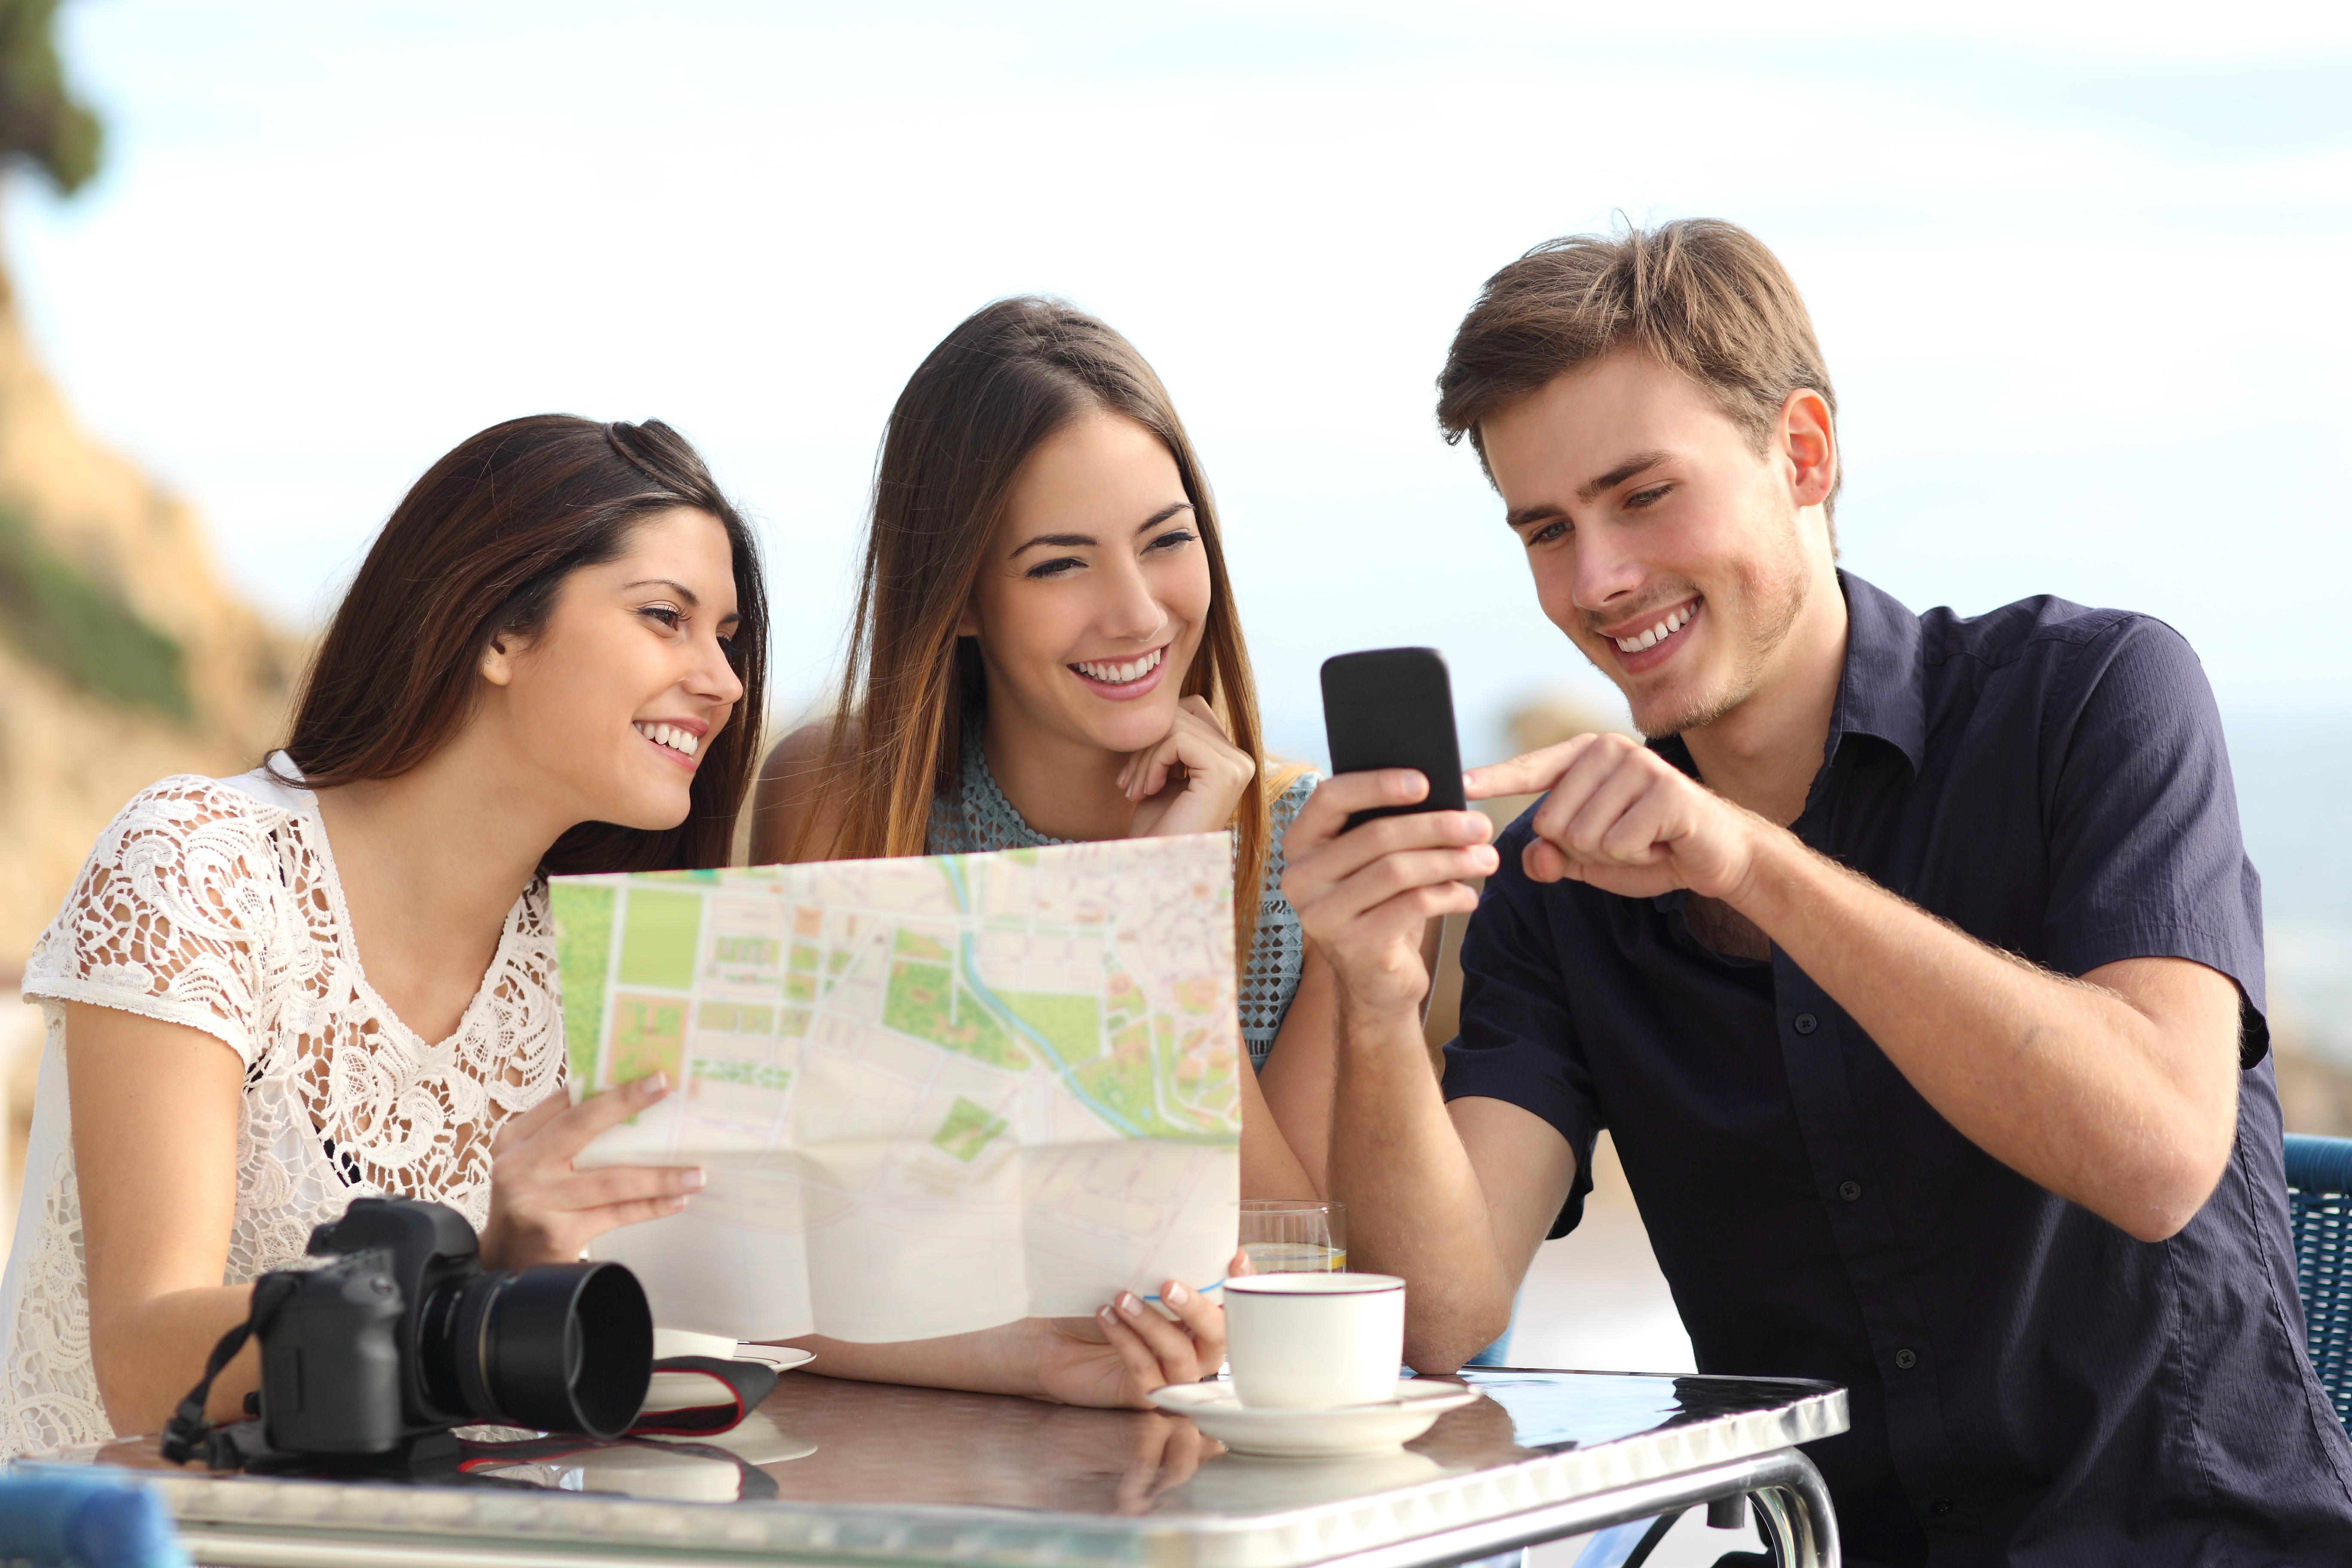 Group Tours Travel